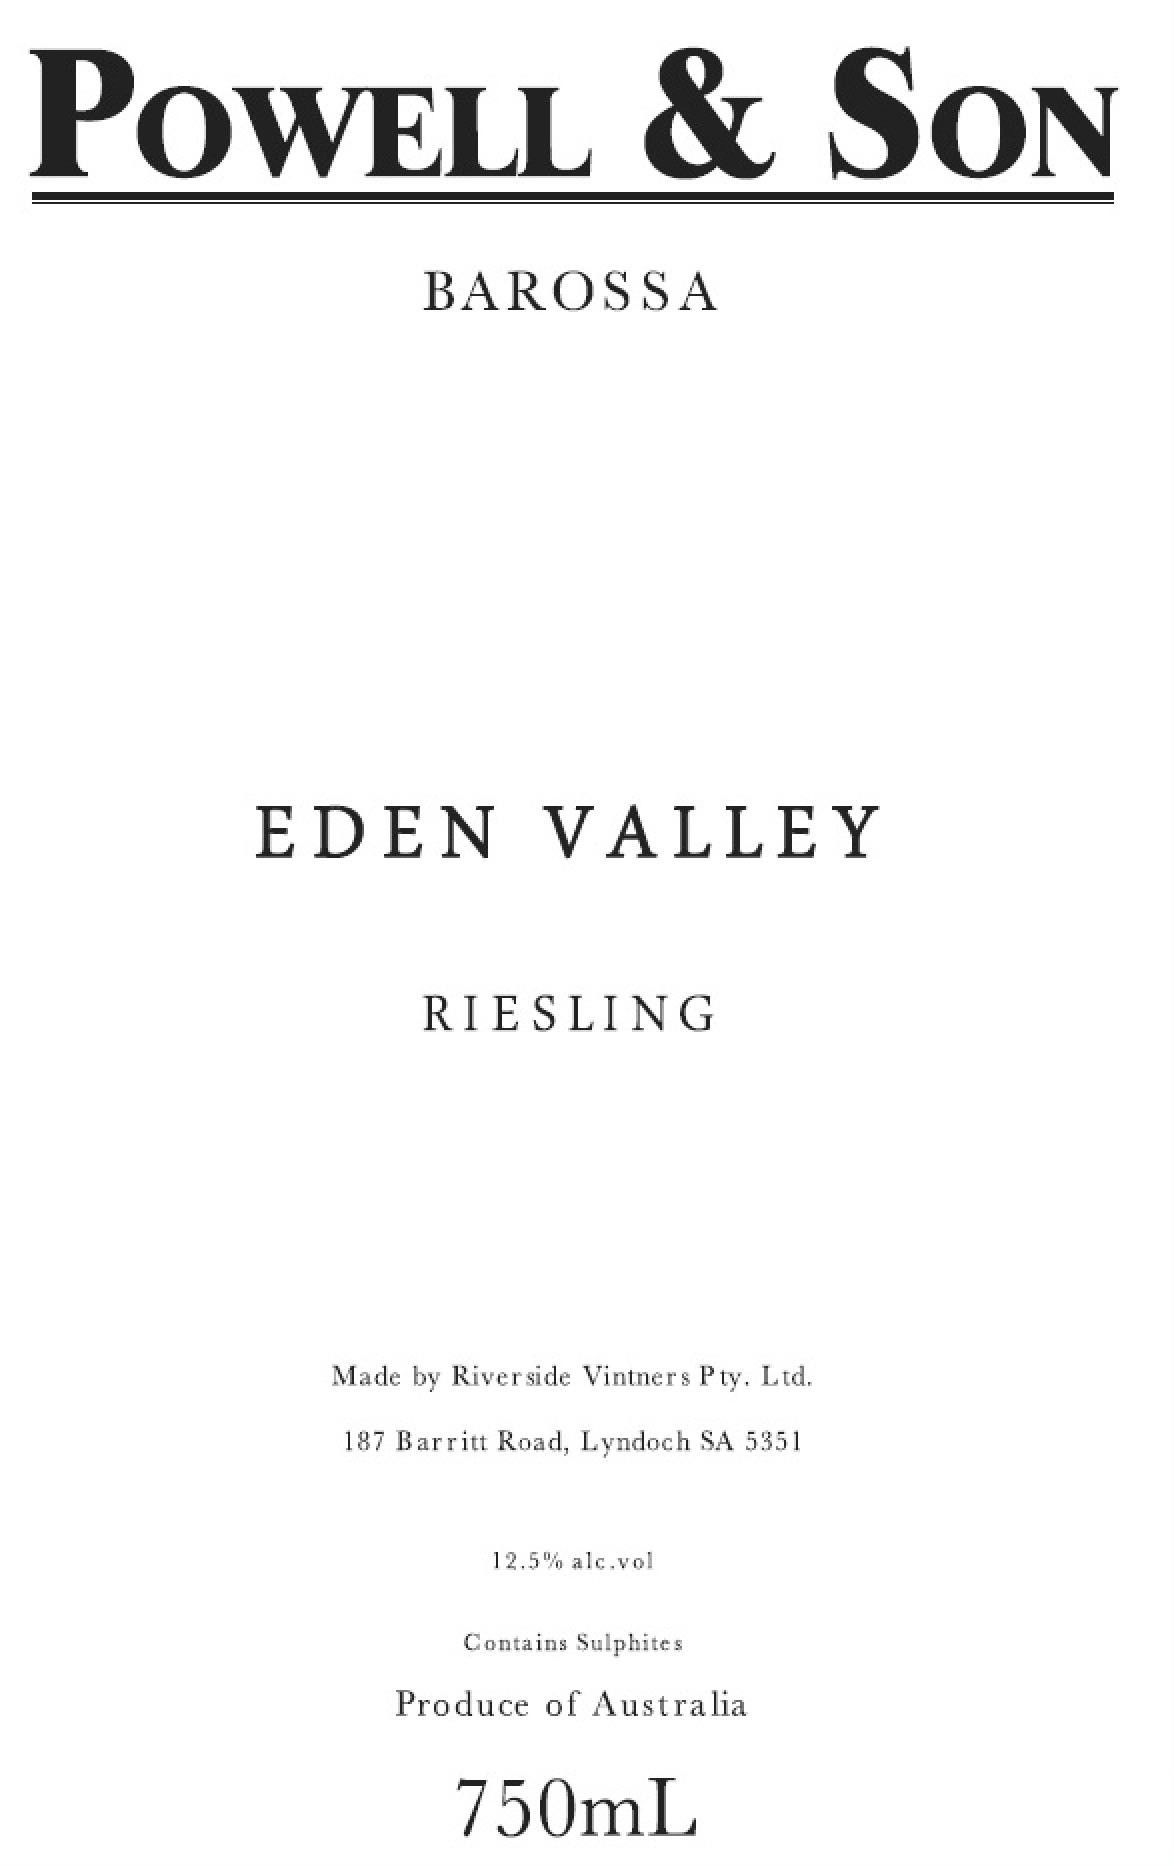 Powell & Son Eden Valley Riesling 2018  Front Label